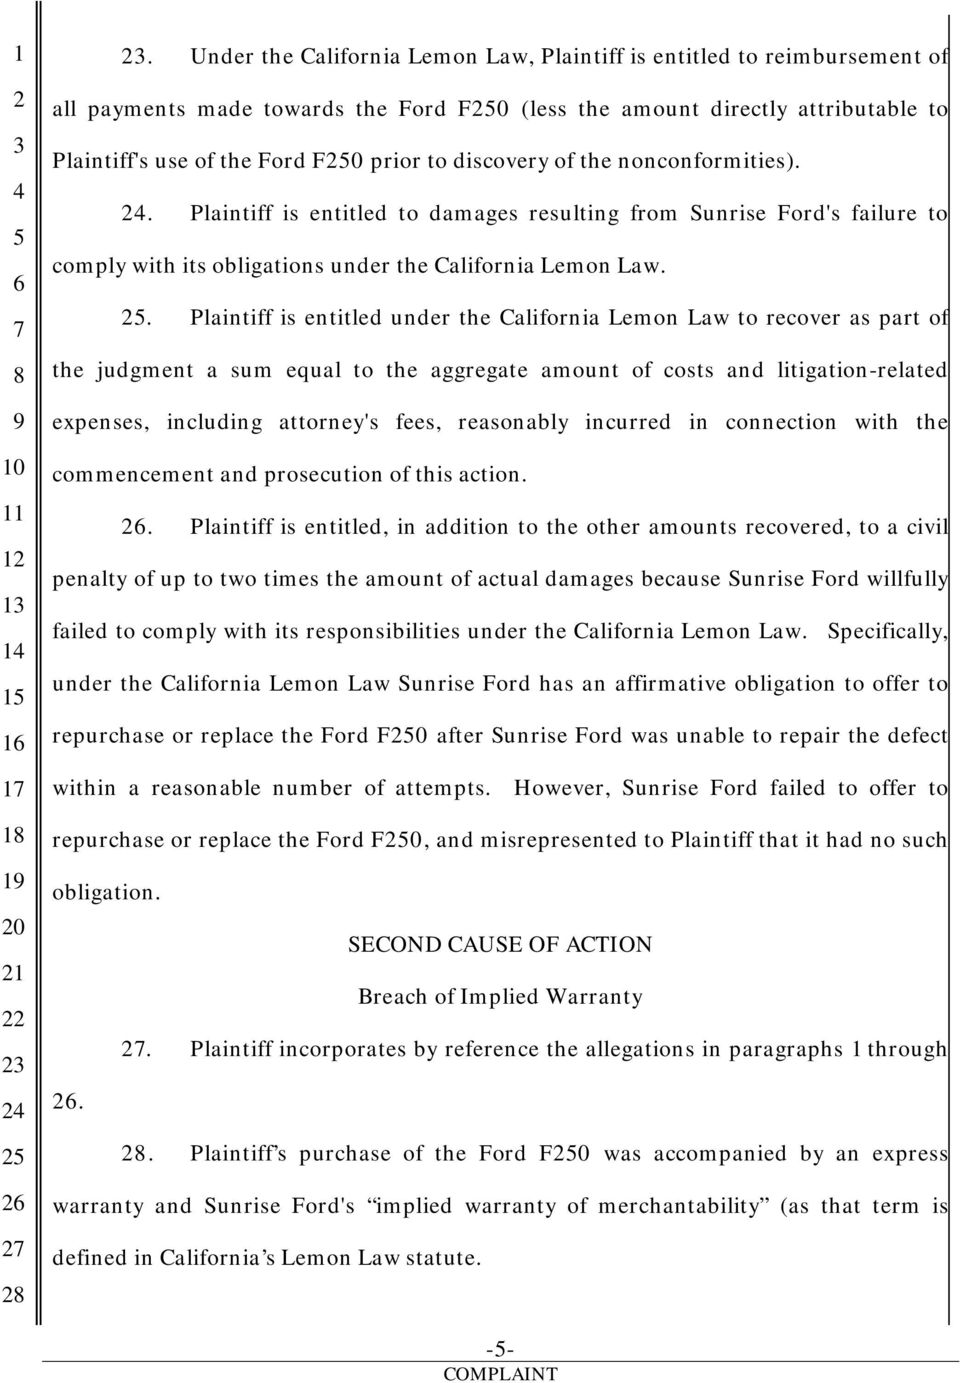 . Plaintiff is entitled under the California Lemon Law to recover as part of the judgment a sum equal to the aggregate amount of costs and litigation-related expenses, including attorney's fees,